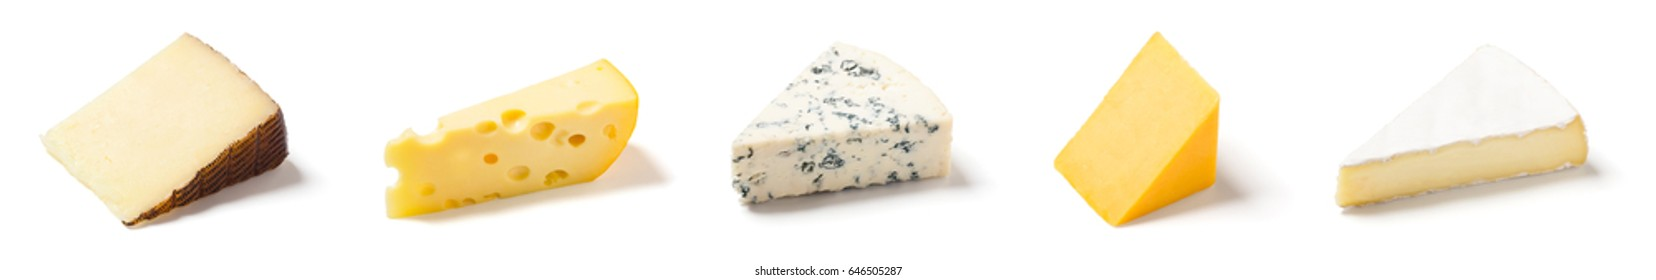 Wedges of 5 Different Types of Cheese on White Background: Manchego (sheeps' milk), Swiss or Emmental, Bleu or Gorgonzola, Cheddar, and Brie